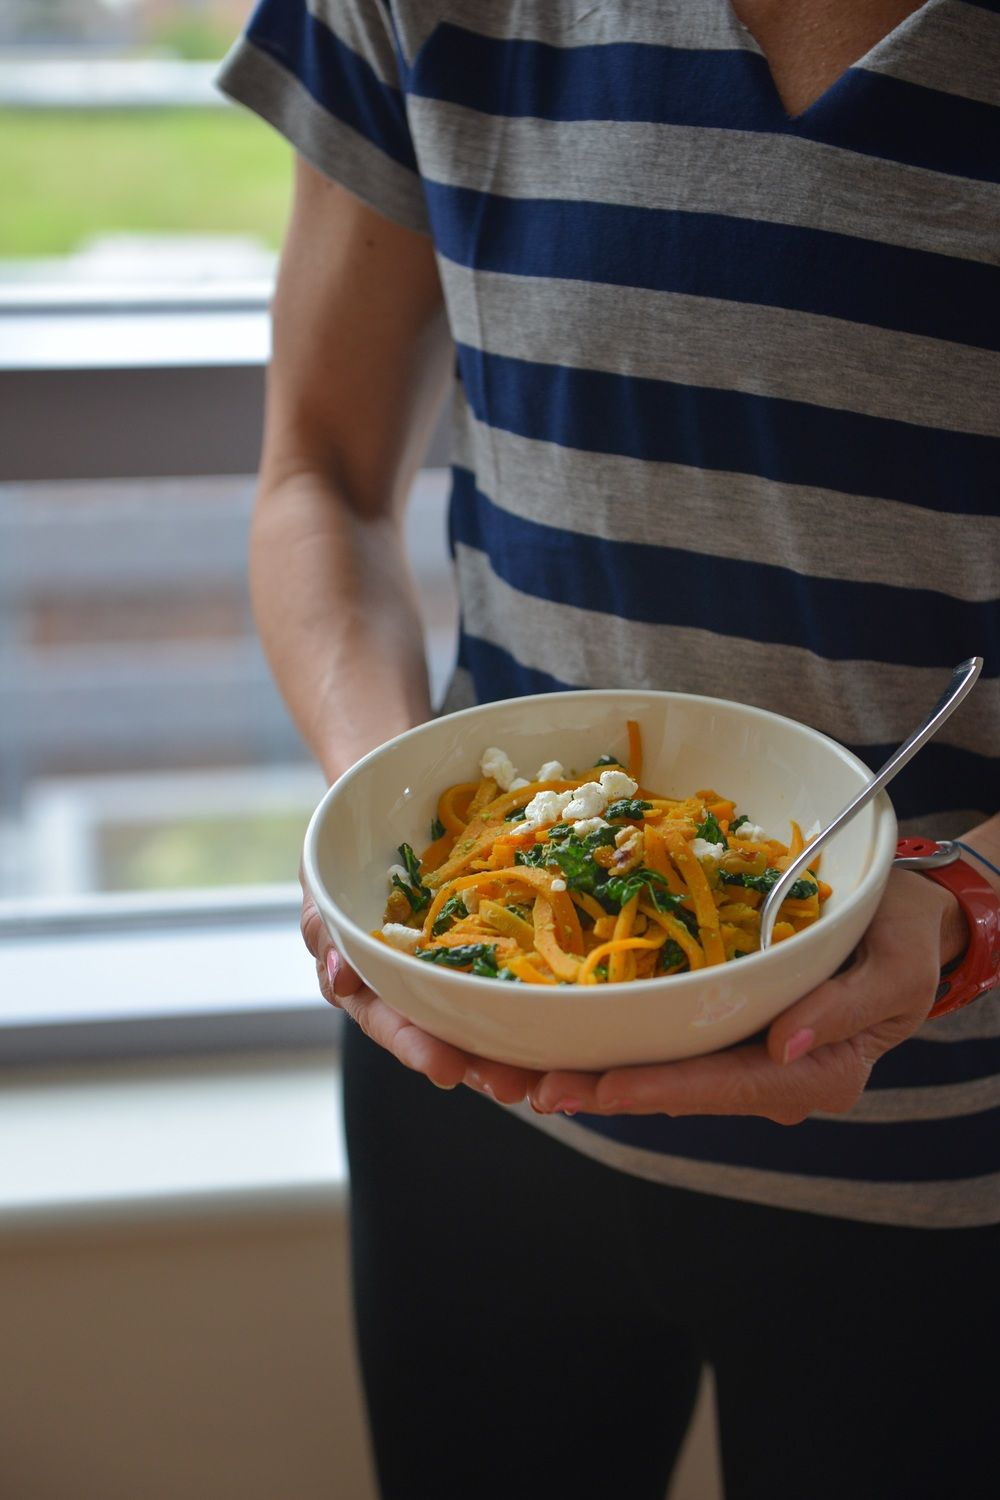 Butternut Noodles with Kale, Pesto, and Goat Cheese #athletefood